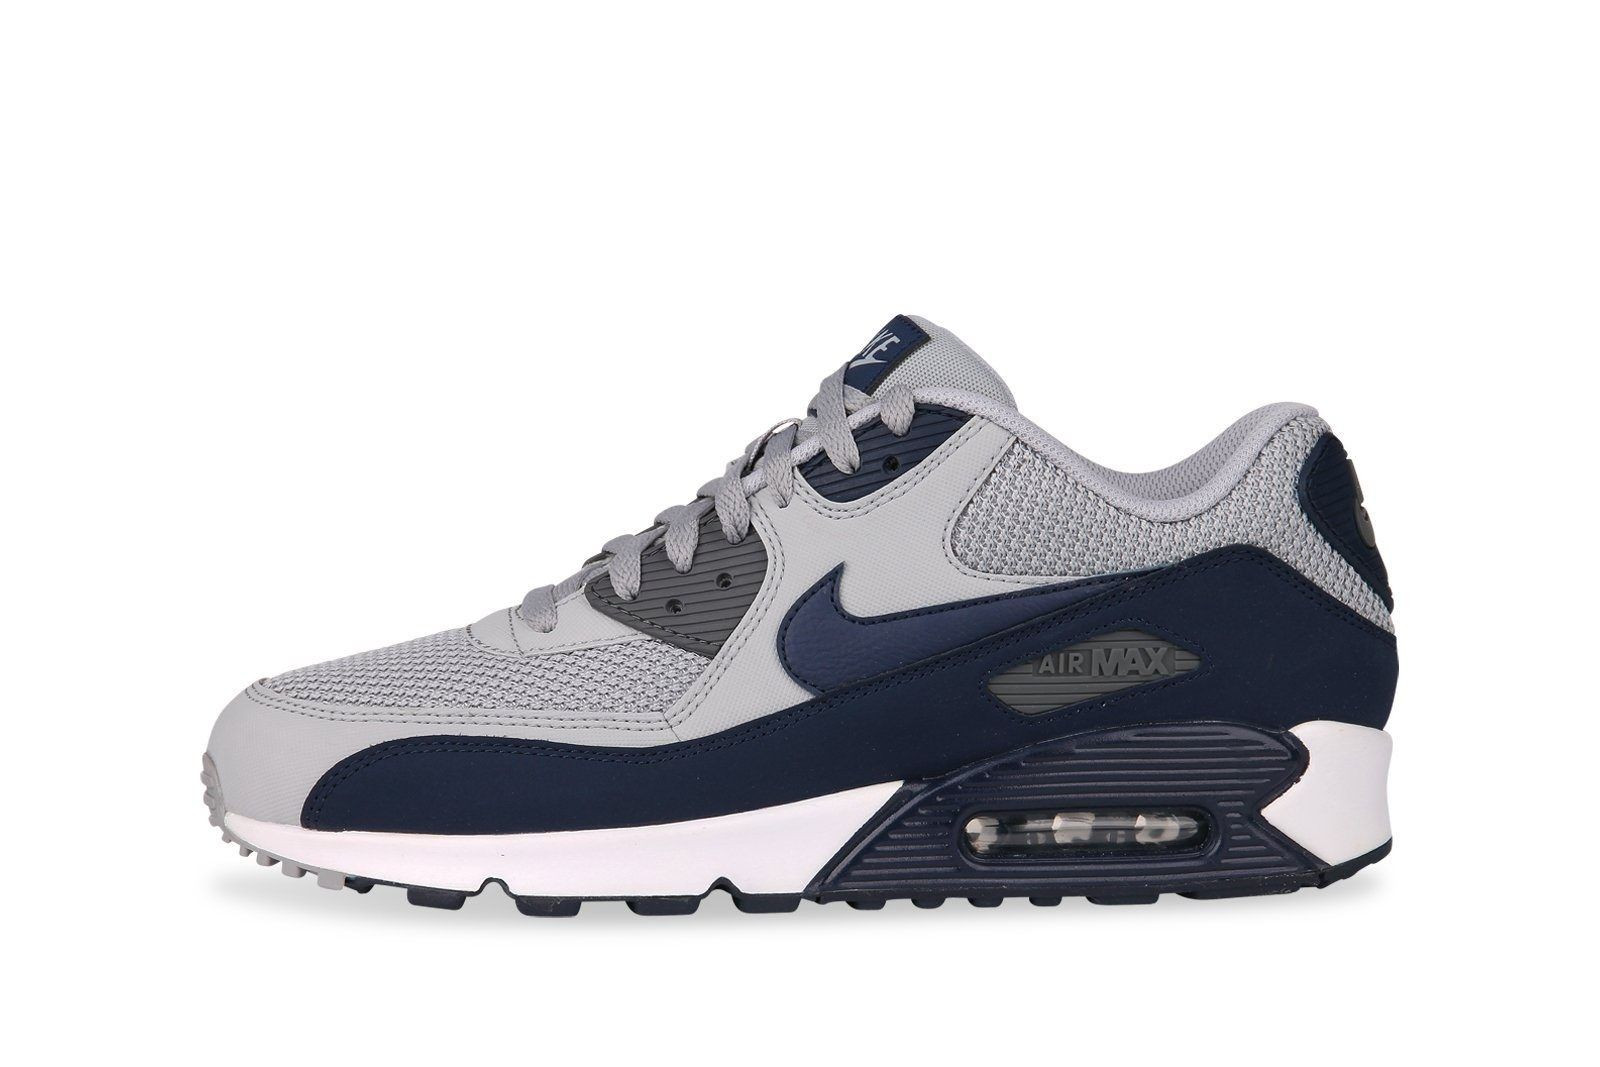 Air Max 90 Essential Maravilloso Buy Nike Air Max 90 Essential 064 064 Line Of 36  Adorable Air Max 90 Essential